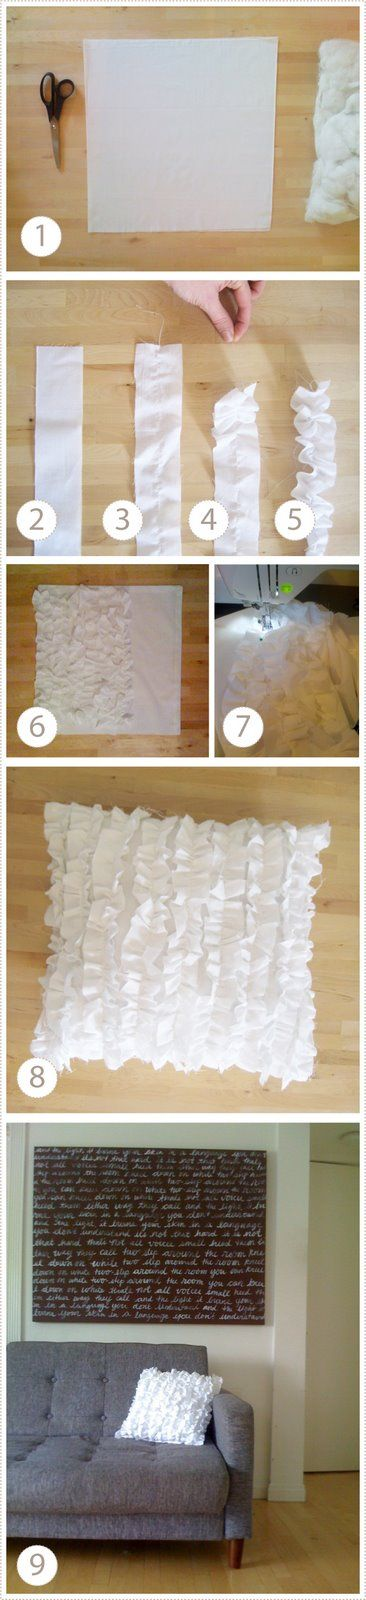 Awesome ruffle tutorial.